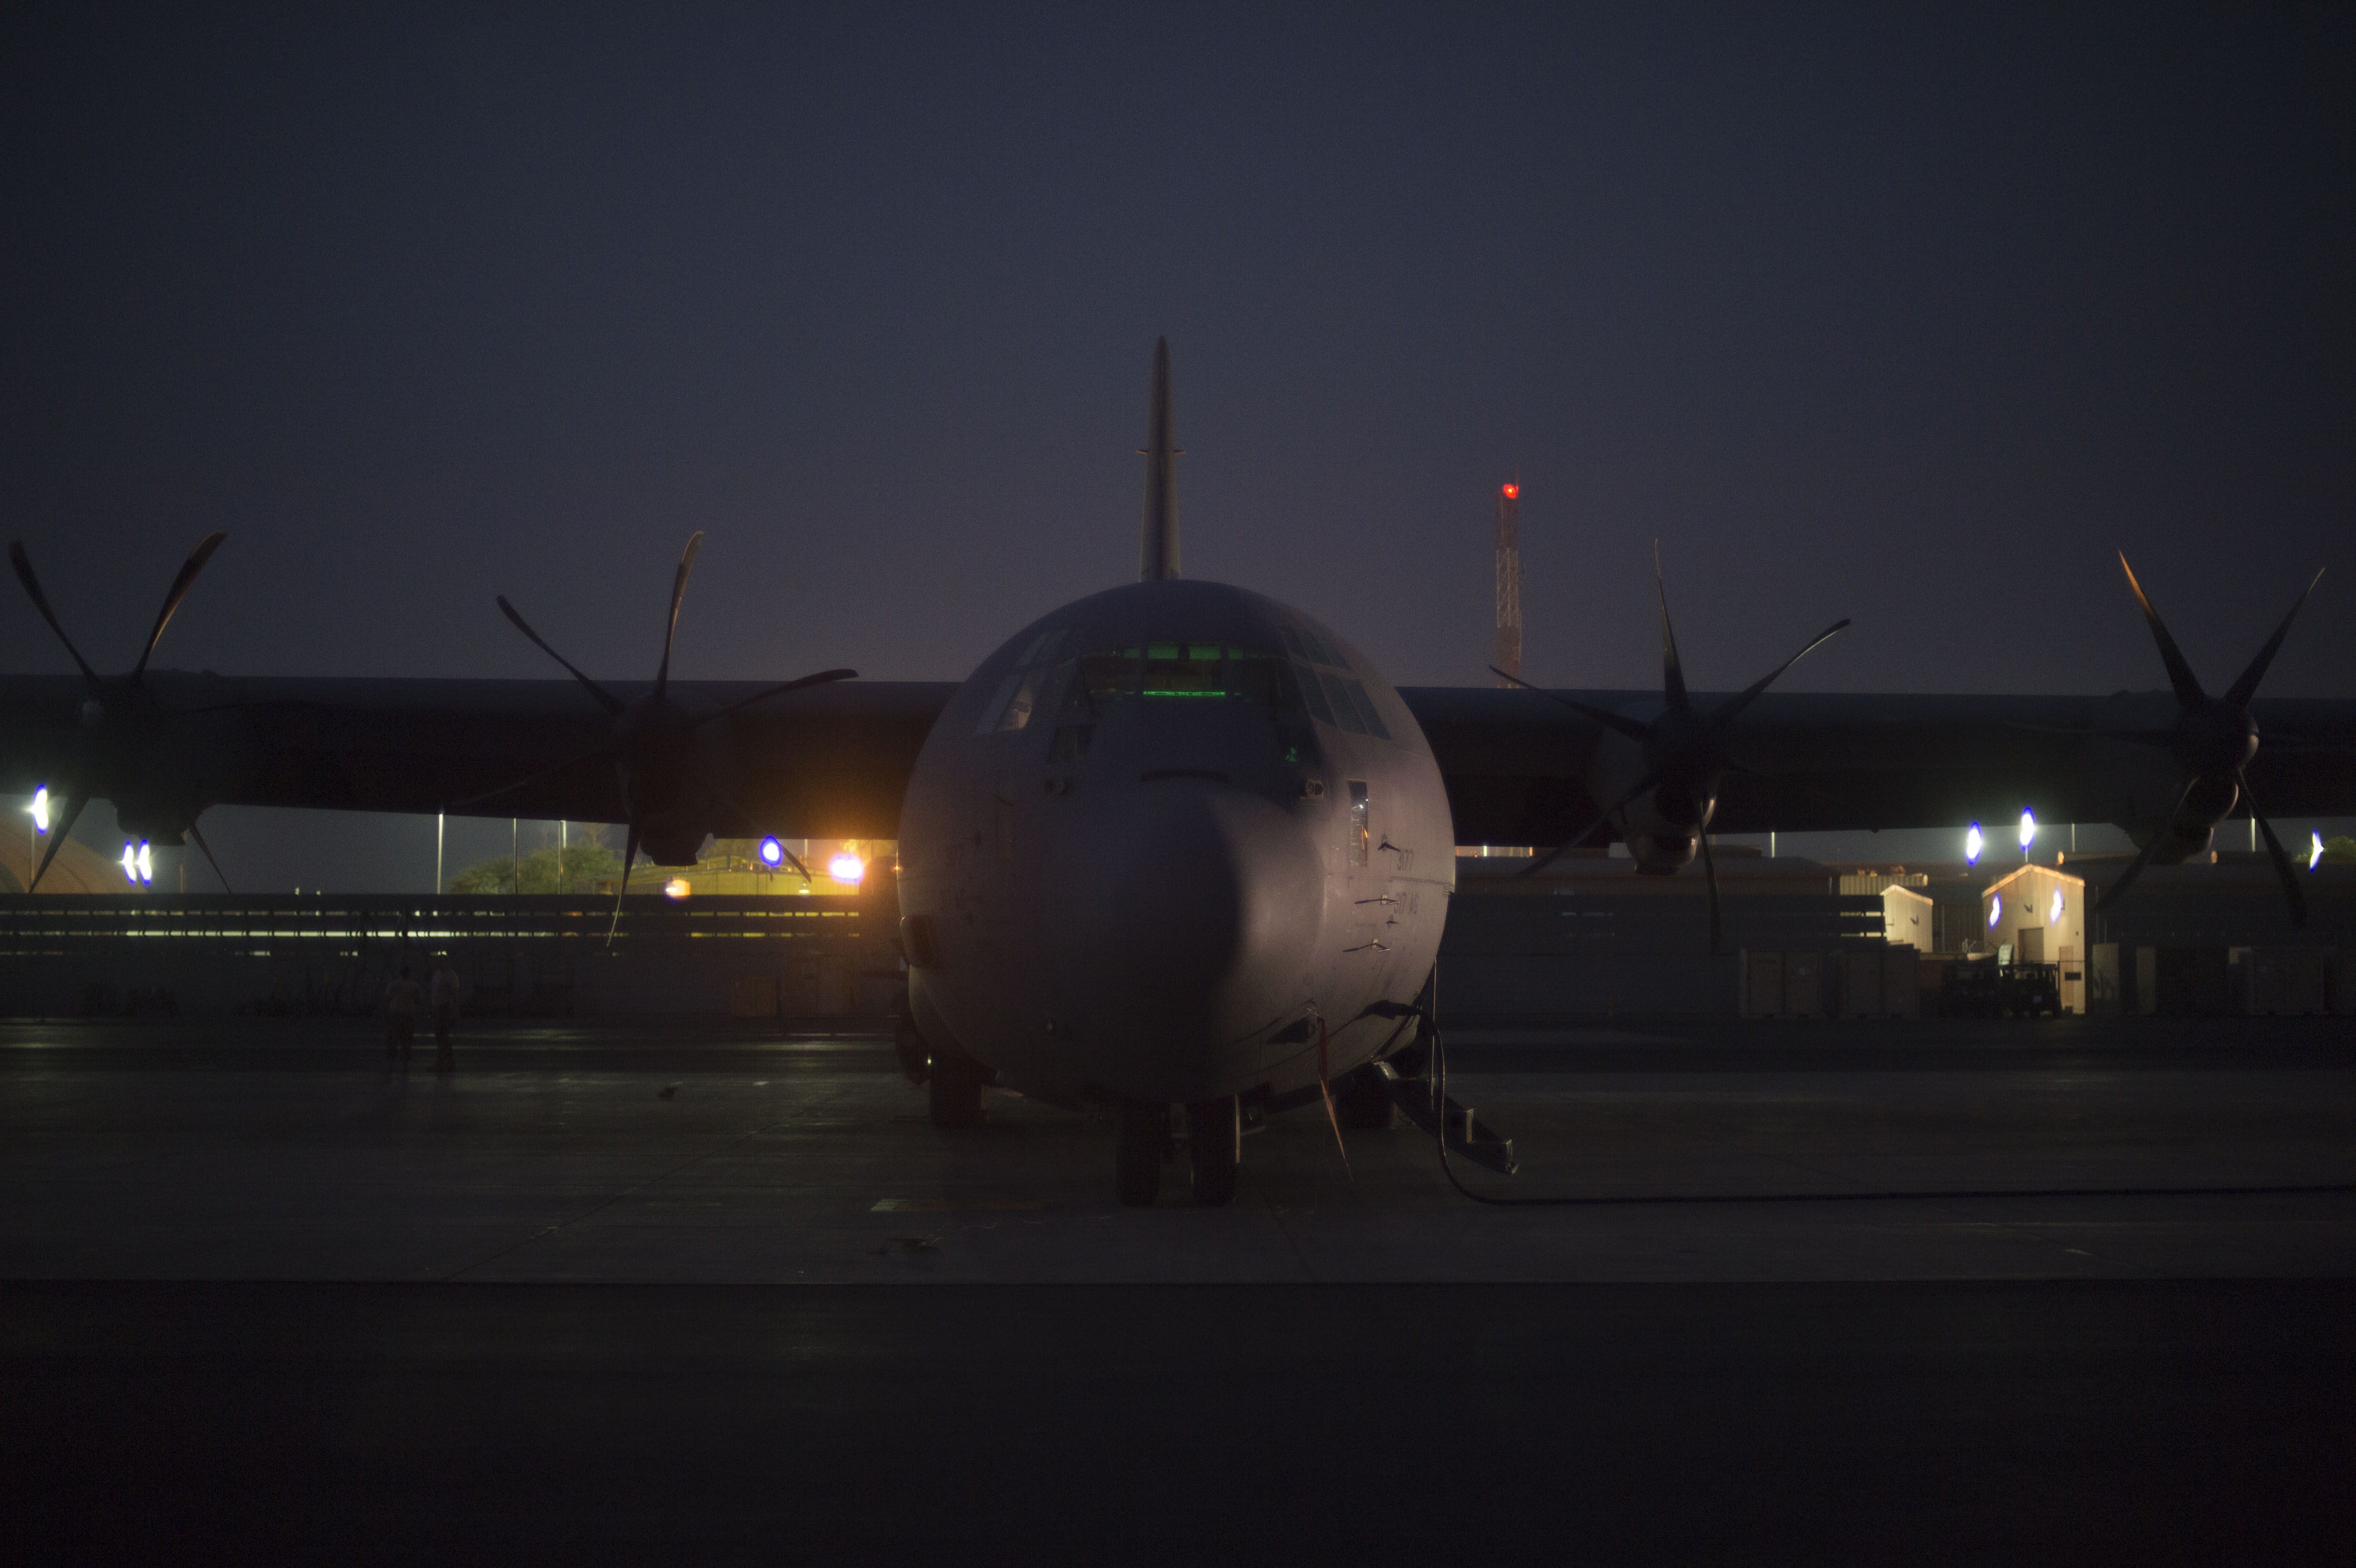 A U.S. Air Force C-130J Hercules rests on the airfield in preparation for cargo and passengers to be transported during an East African Response Force validation exercise May 27, 2016, at Camp Lemonnier, Djibouti.  The Hercules and its crewmembers are deployed from Dyess Air Force Base, Texas. (U.S. Air Force photo by Staff Sgt. Eric Summers Jr.)